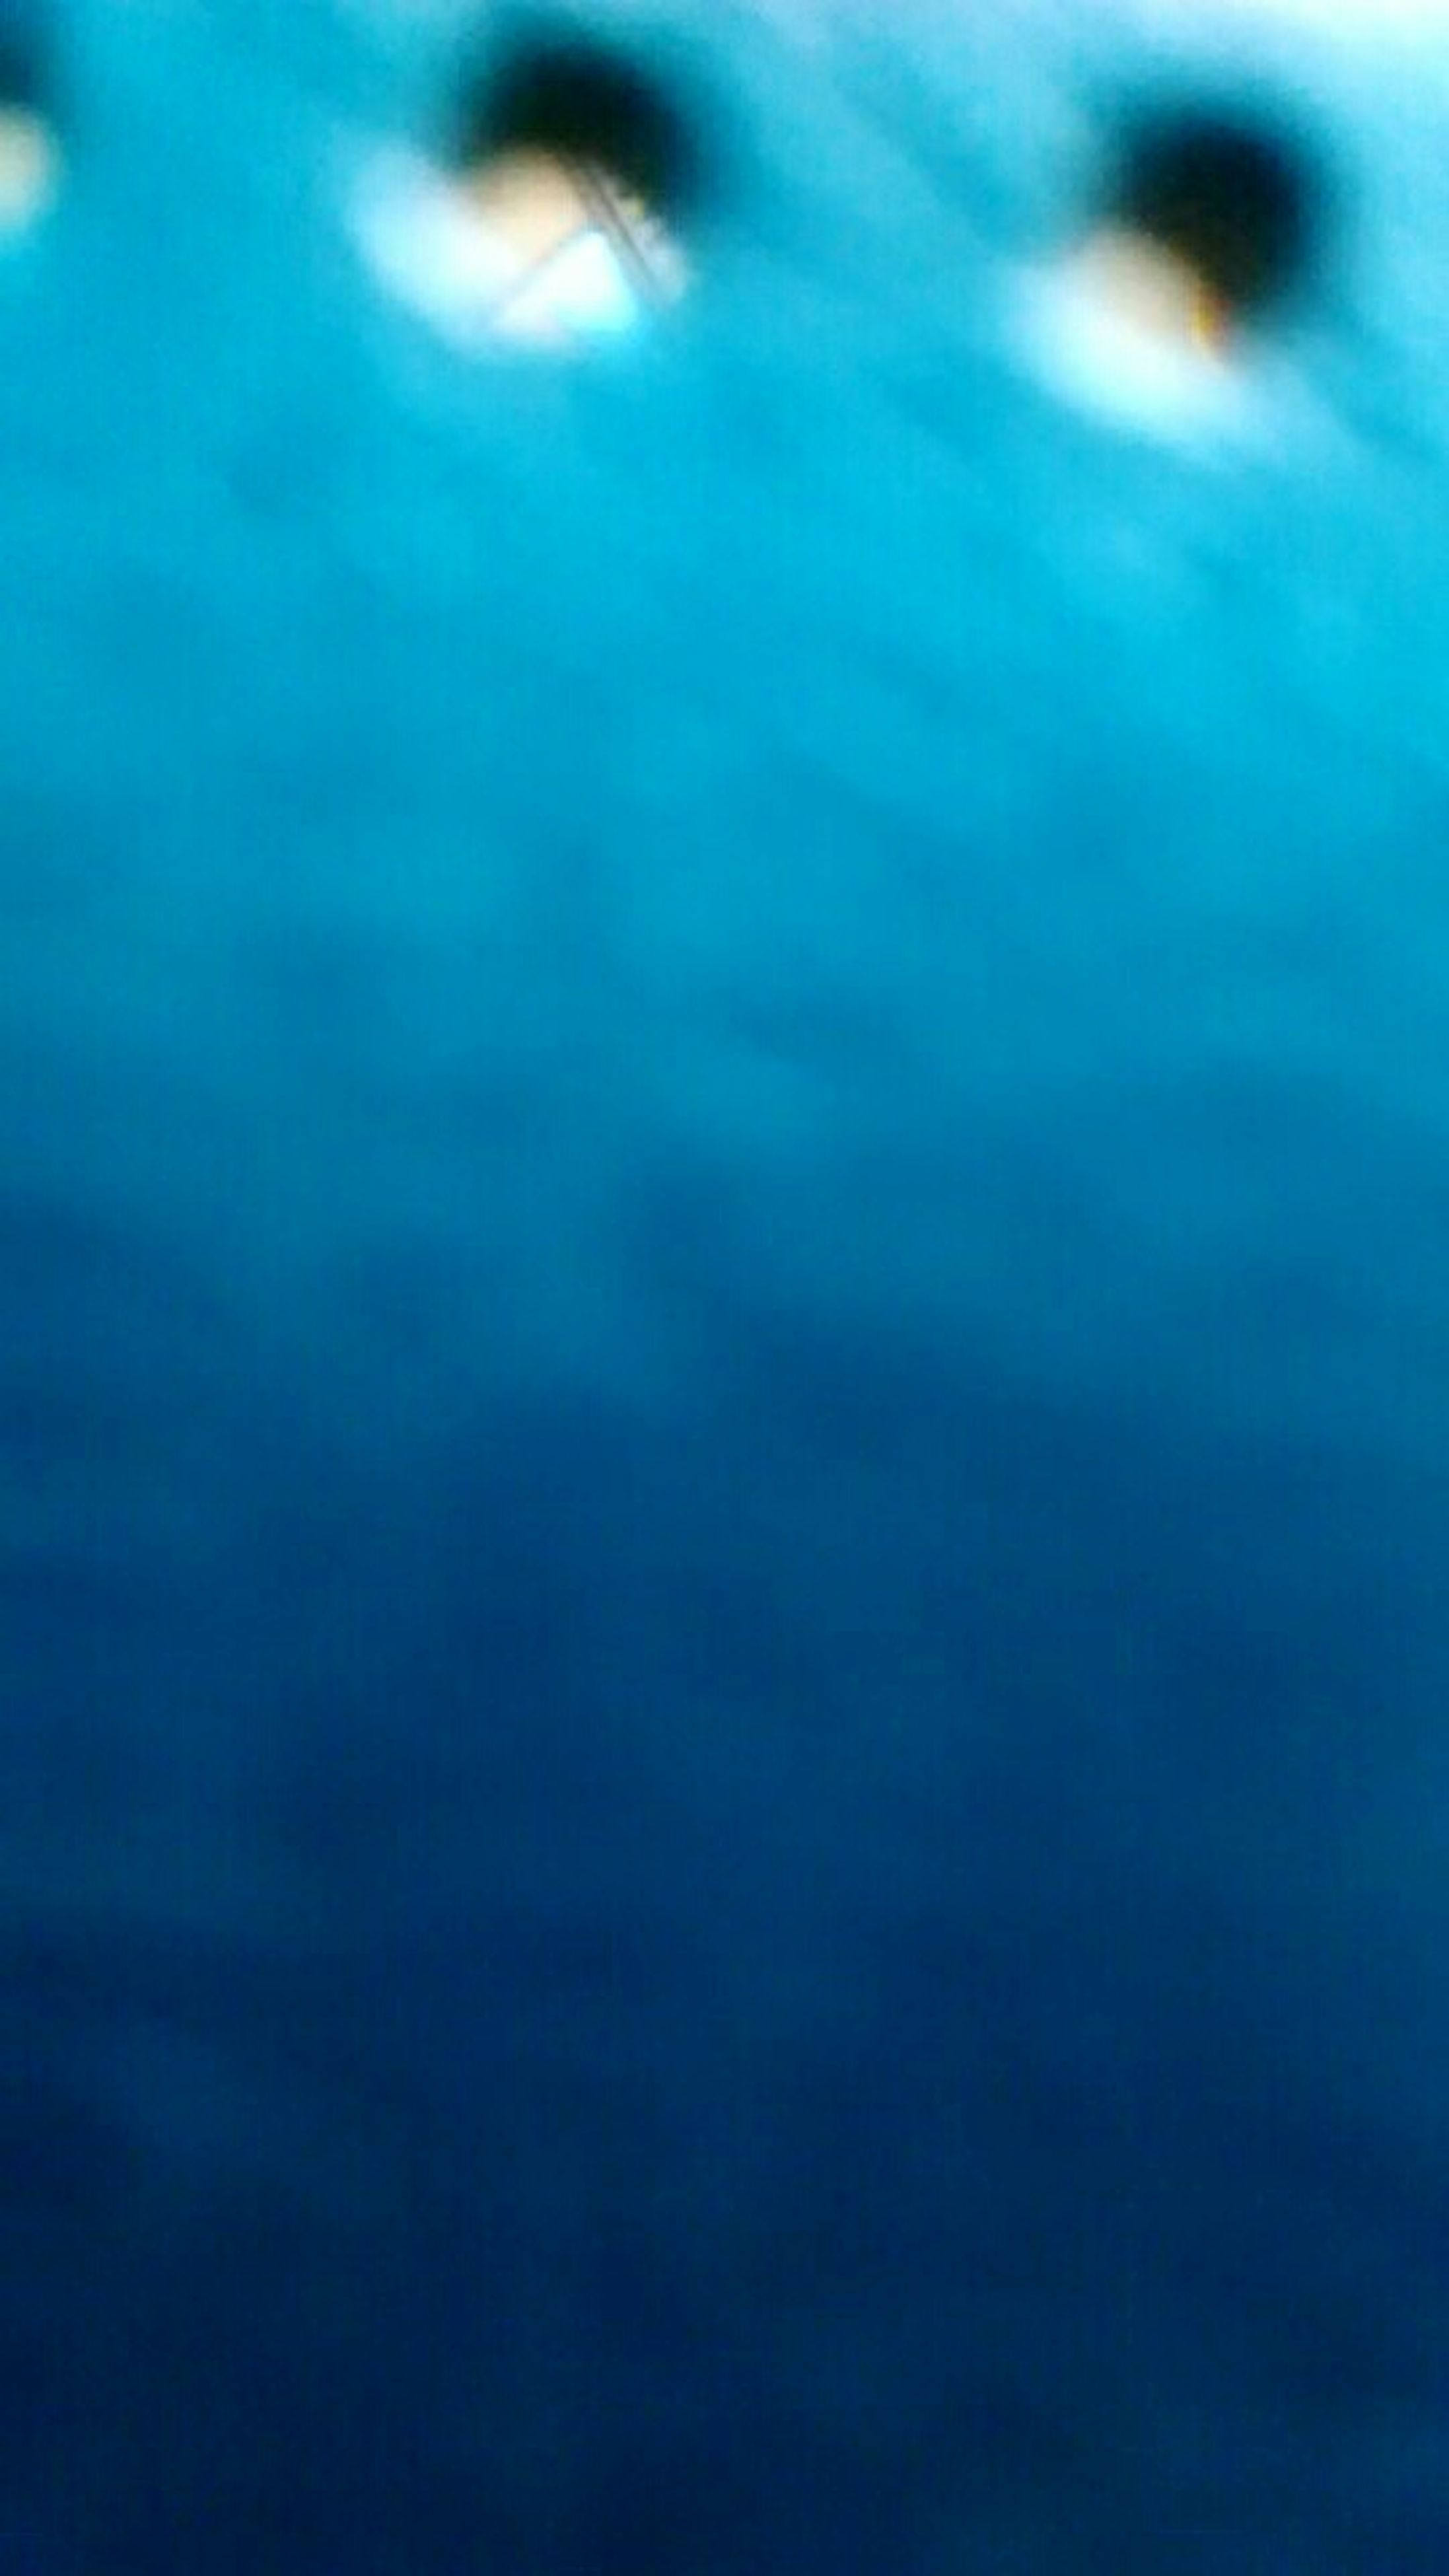 blue, full frame, backgrounds, water, nature, close-up, beauty in nature, selective focus, tranquility, no people, sea, natural pattern, underwater, waterfront, outdoors, textured, abstract, day, scenics, pattern